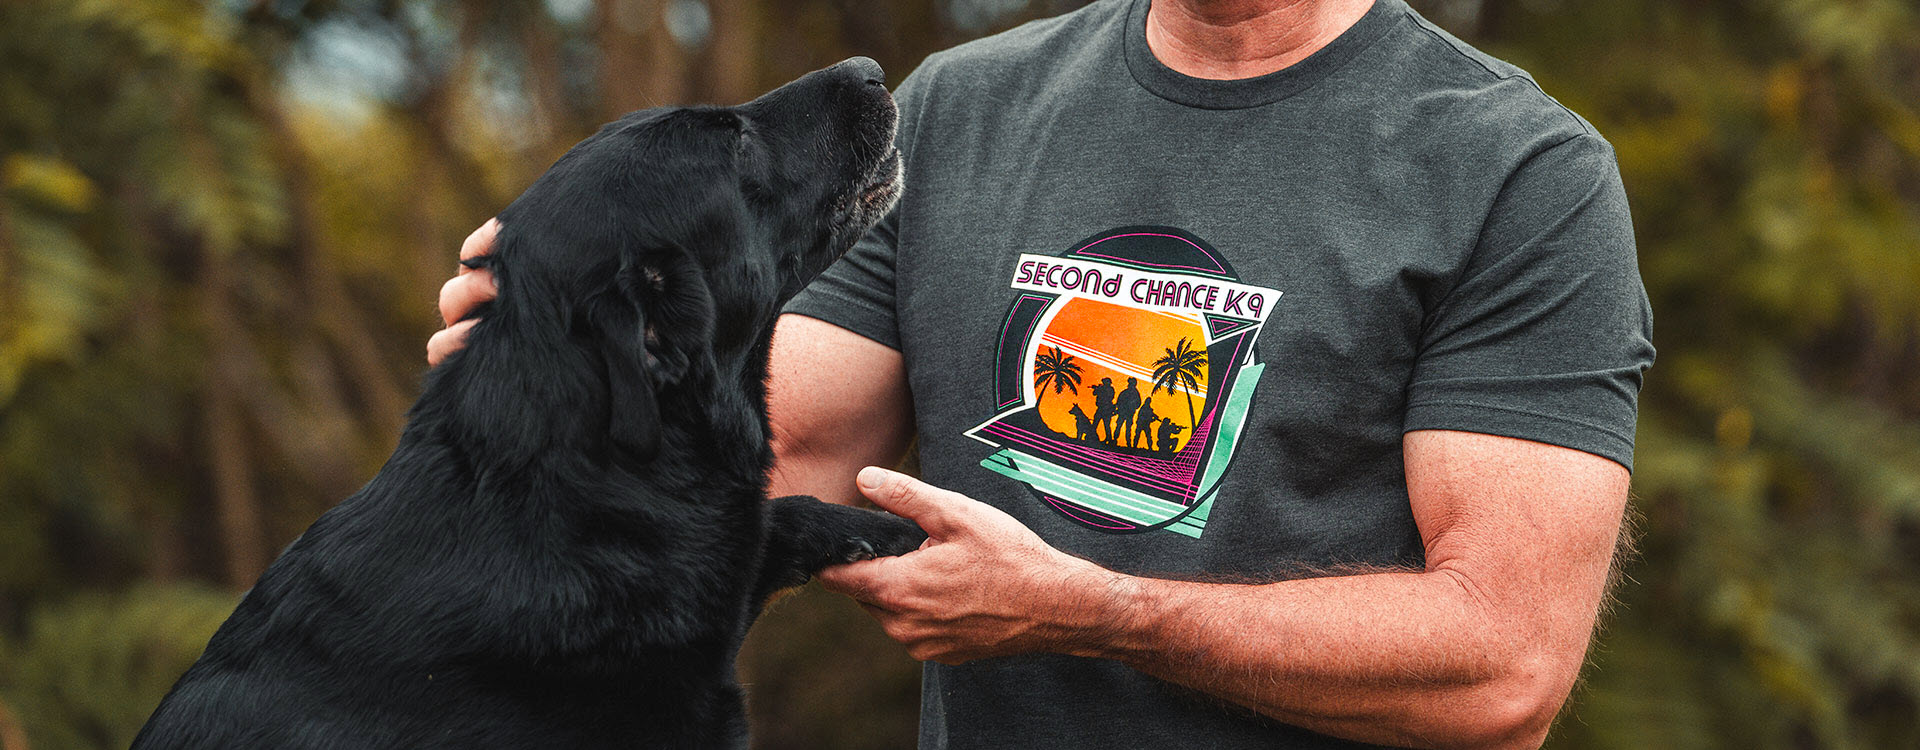 Magpul Second Chance K9 T-Shirt with 80's inspired graphic on chest of K9 and handlers worn by man outdoors with Black Lab